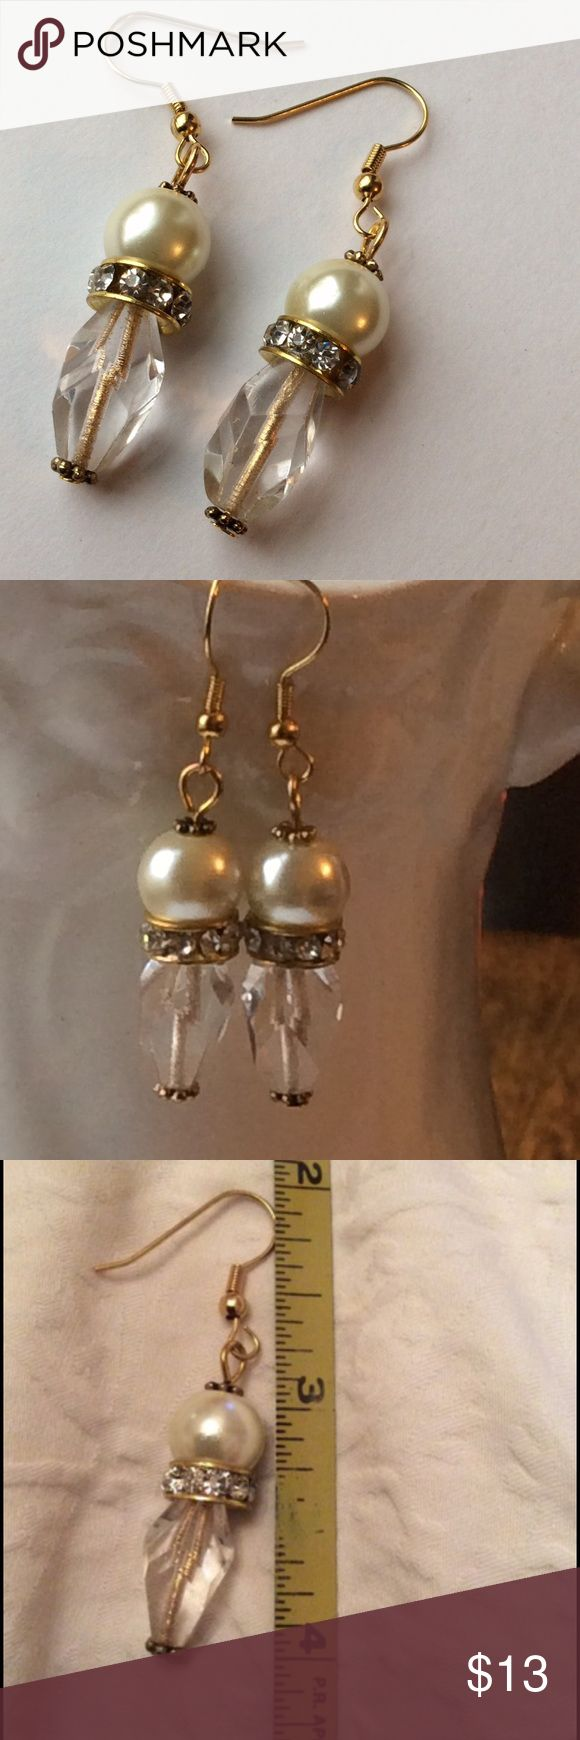 BOGO SALE 🌹 Fantastic Pearl & Gold Earrings These are great!!! A Large Faux Pearl, a Glass Globe shaped Bead & an Over Sized Jeweled Rondelle Jewelry Earrings